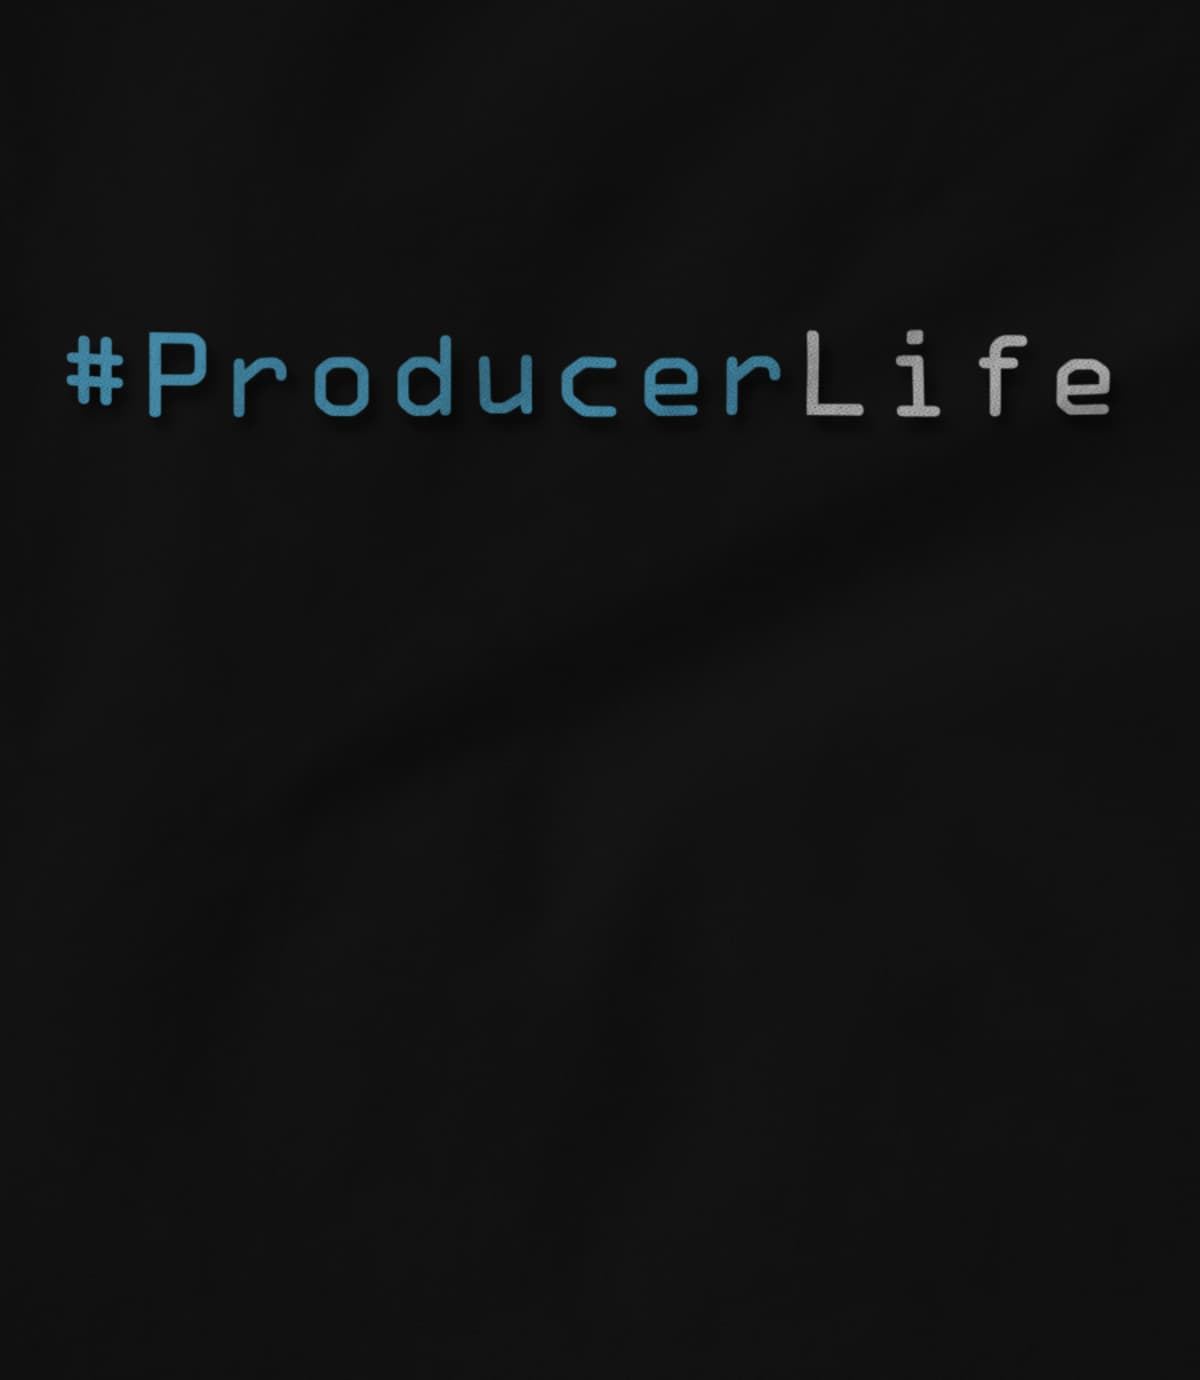 Producer Life (Limited Edition)